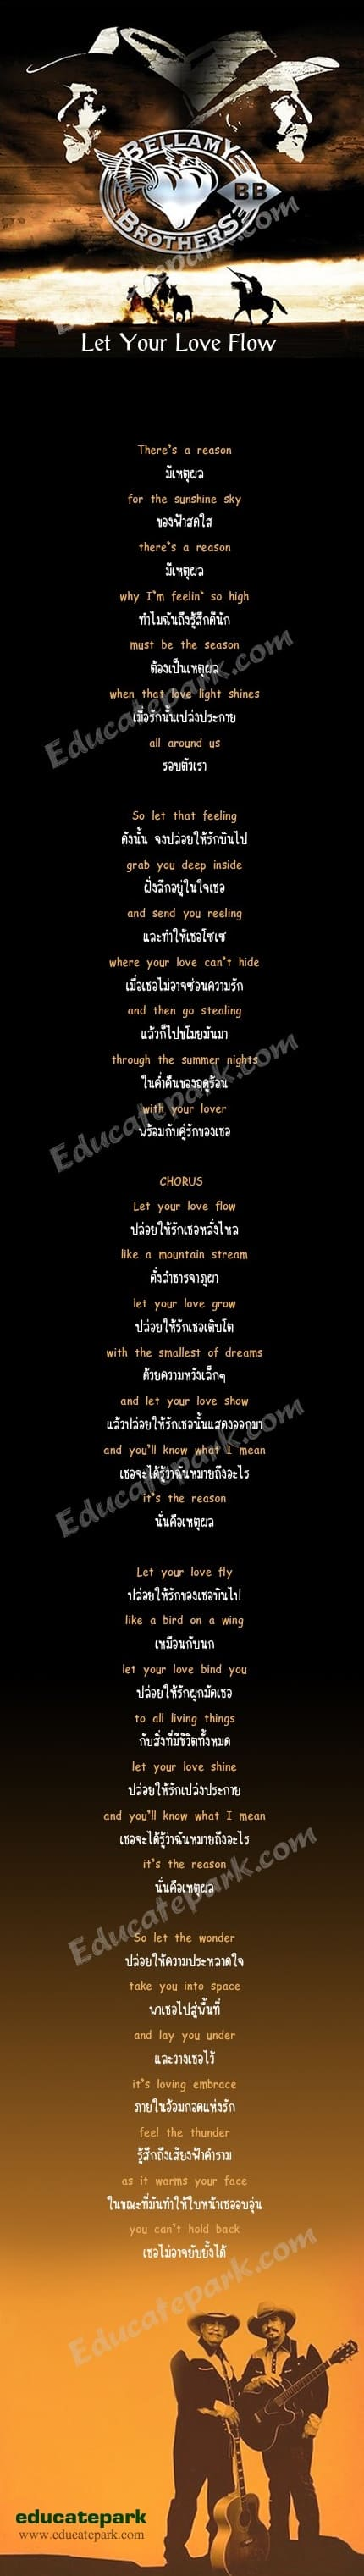 แปลเพลง Let Your Love Flow - Bellamy Brothers